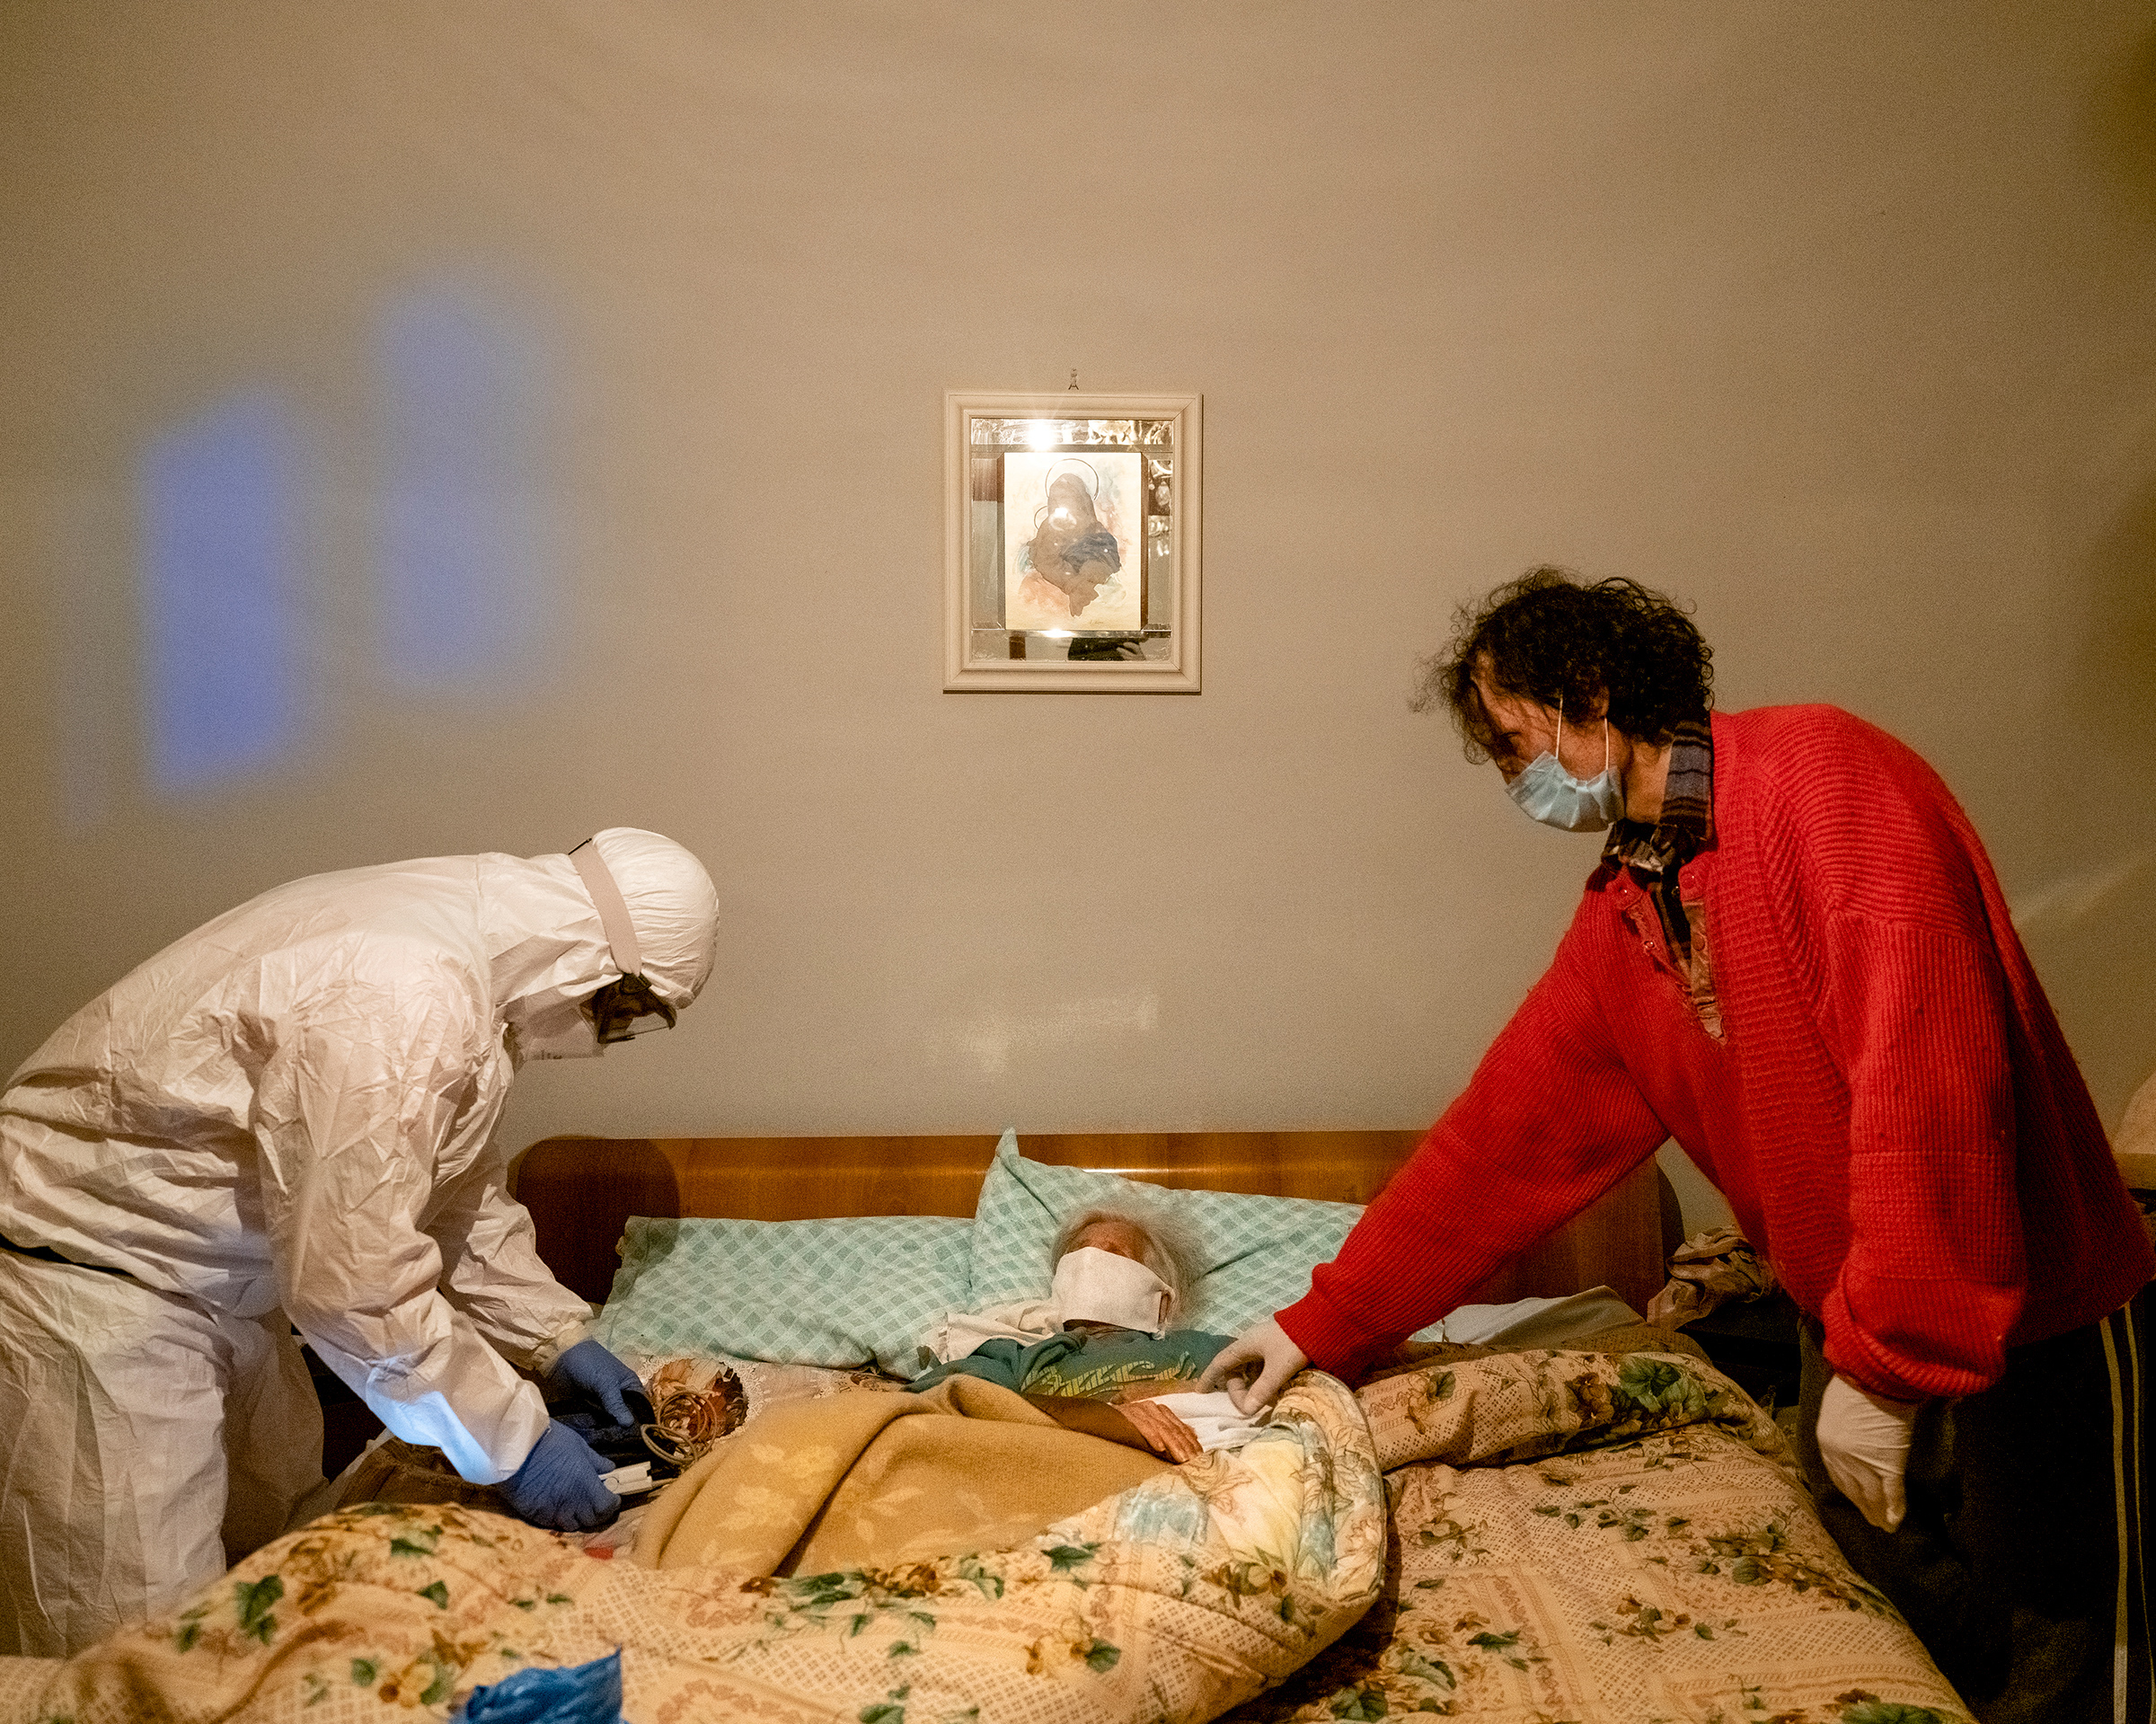 A health worker checks an elderly woman's oxygen level, after receiving a call about a suspected COVID-19 case, in the northern Italian province of Bergamo.